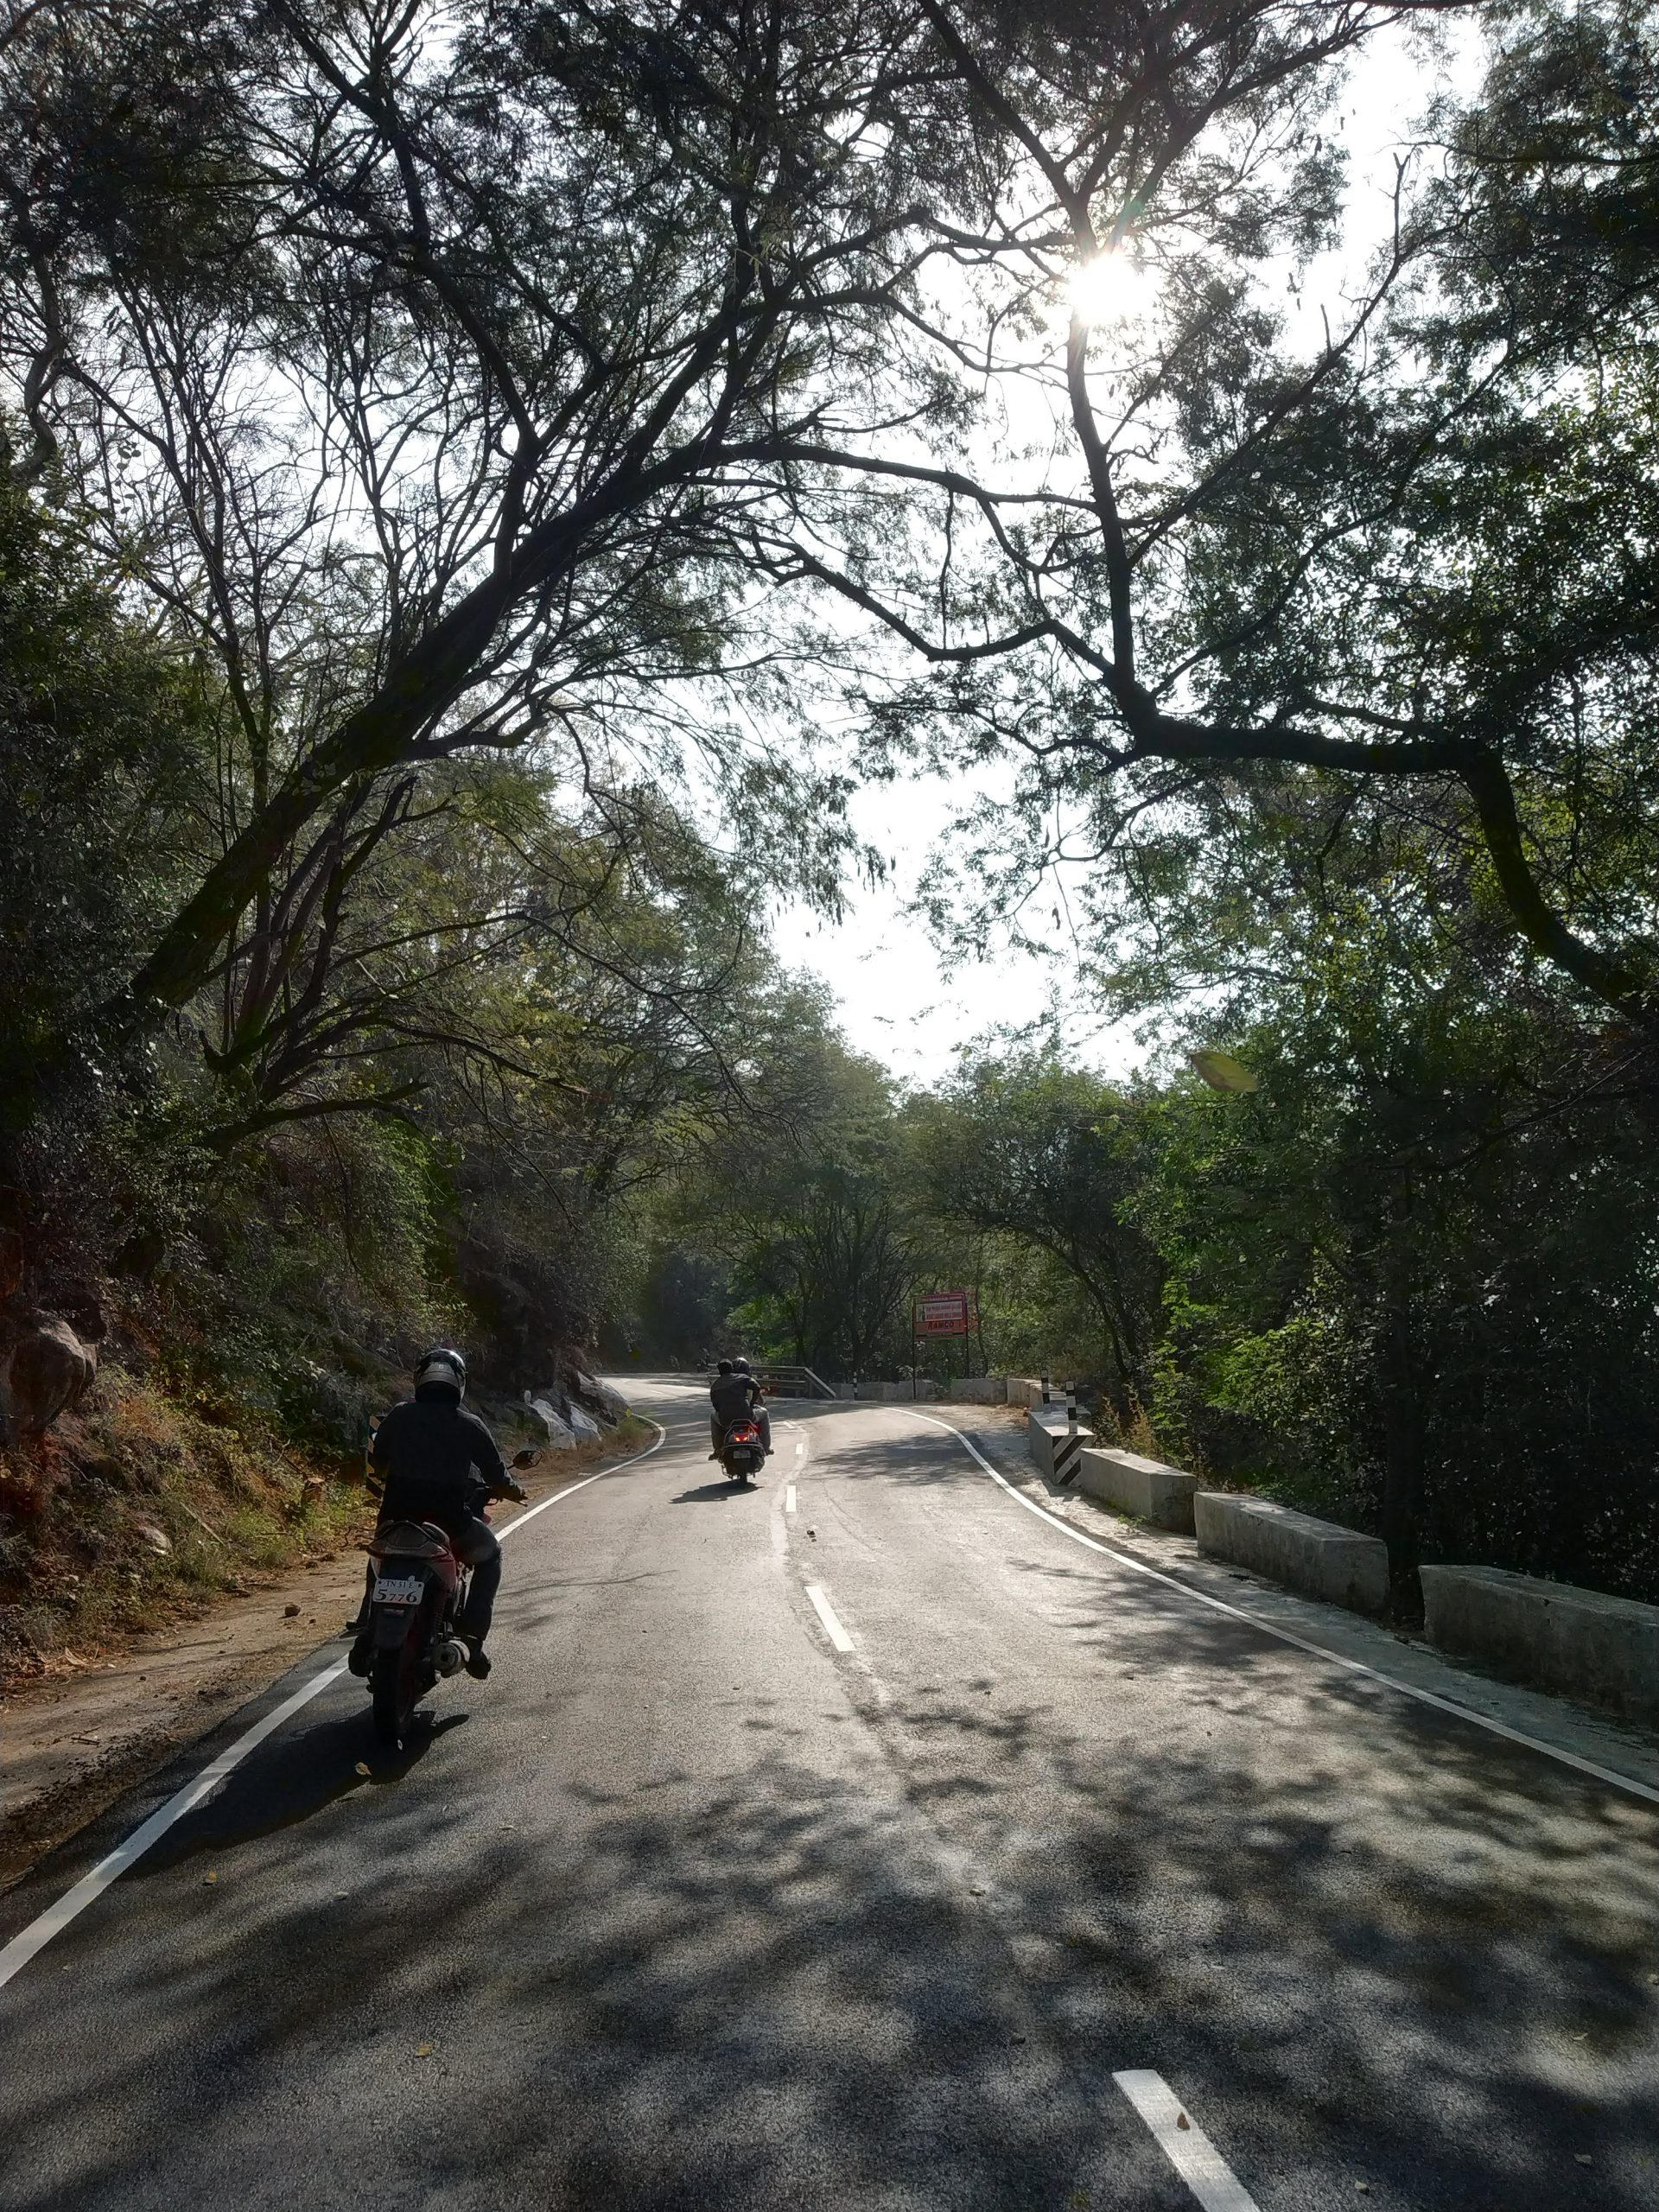 Bikes passing through a hill station road